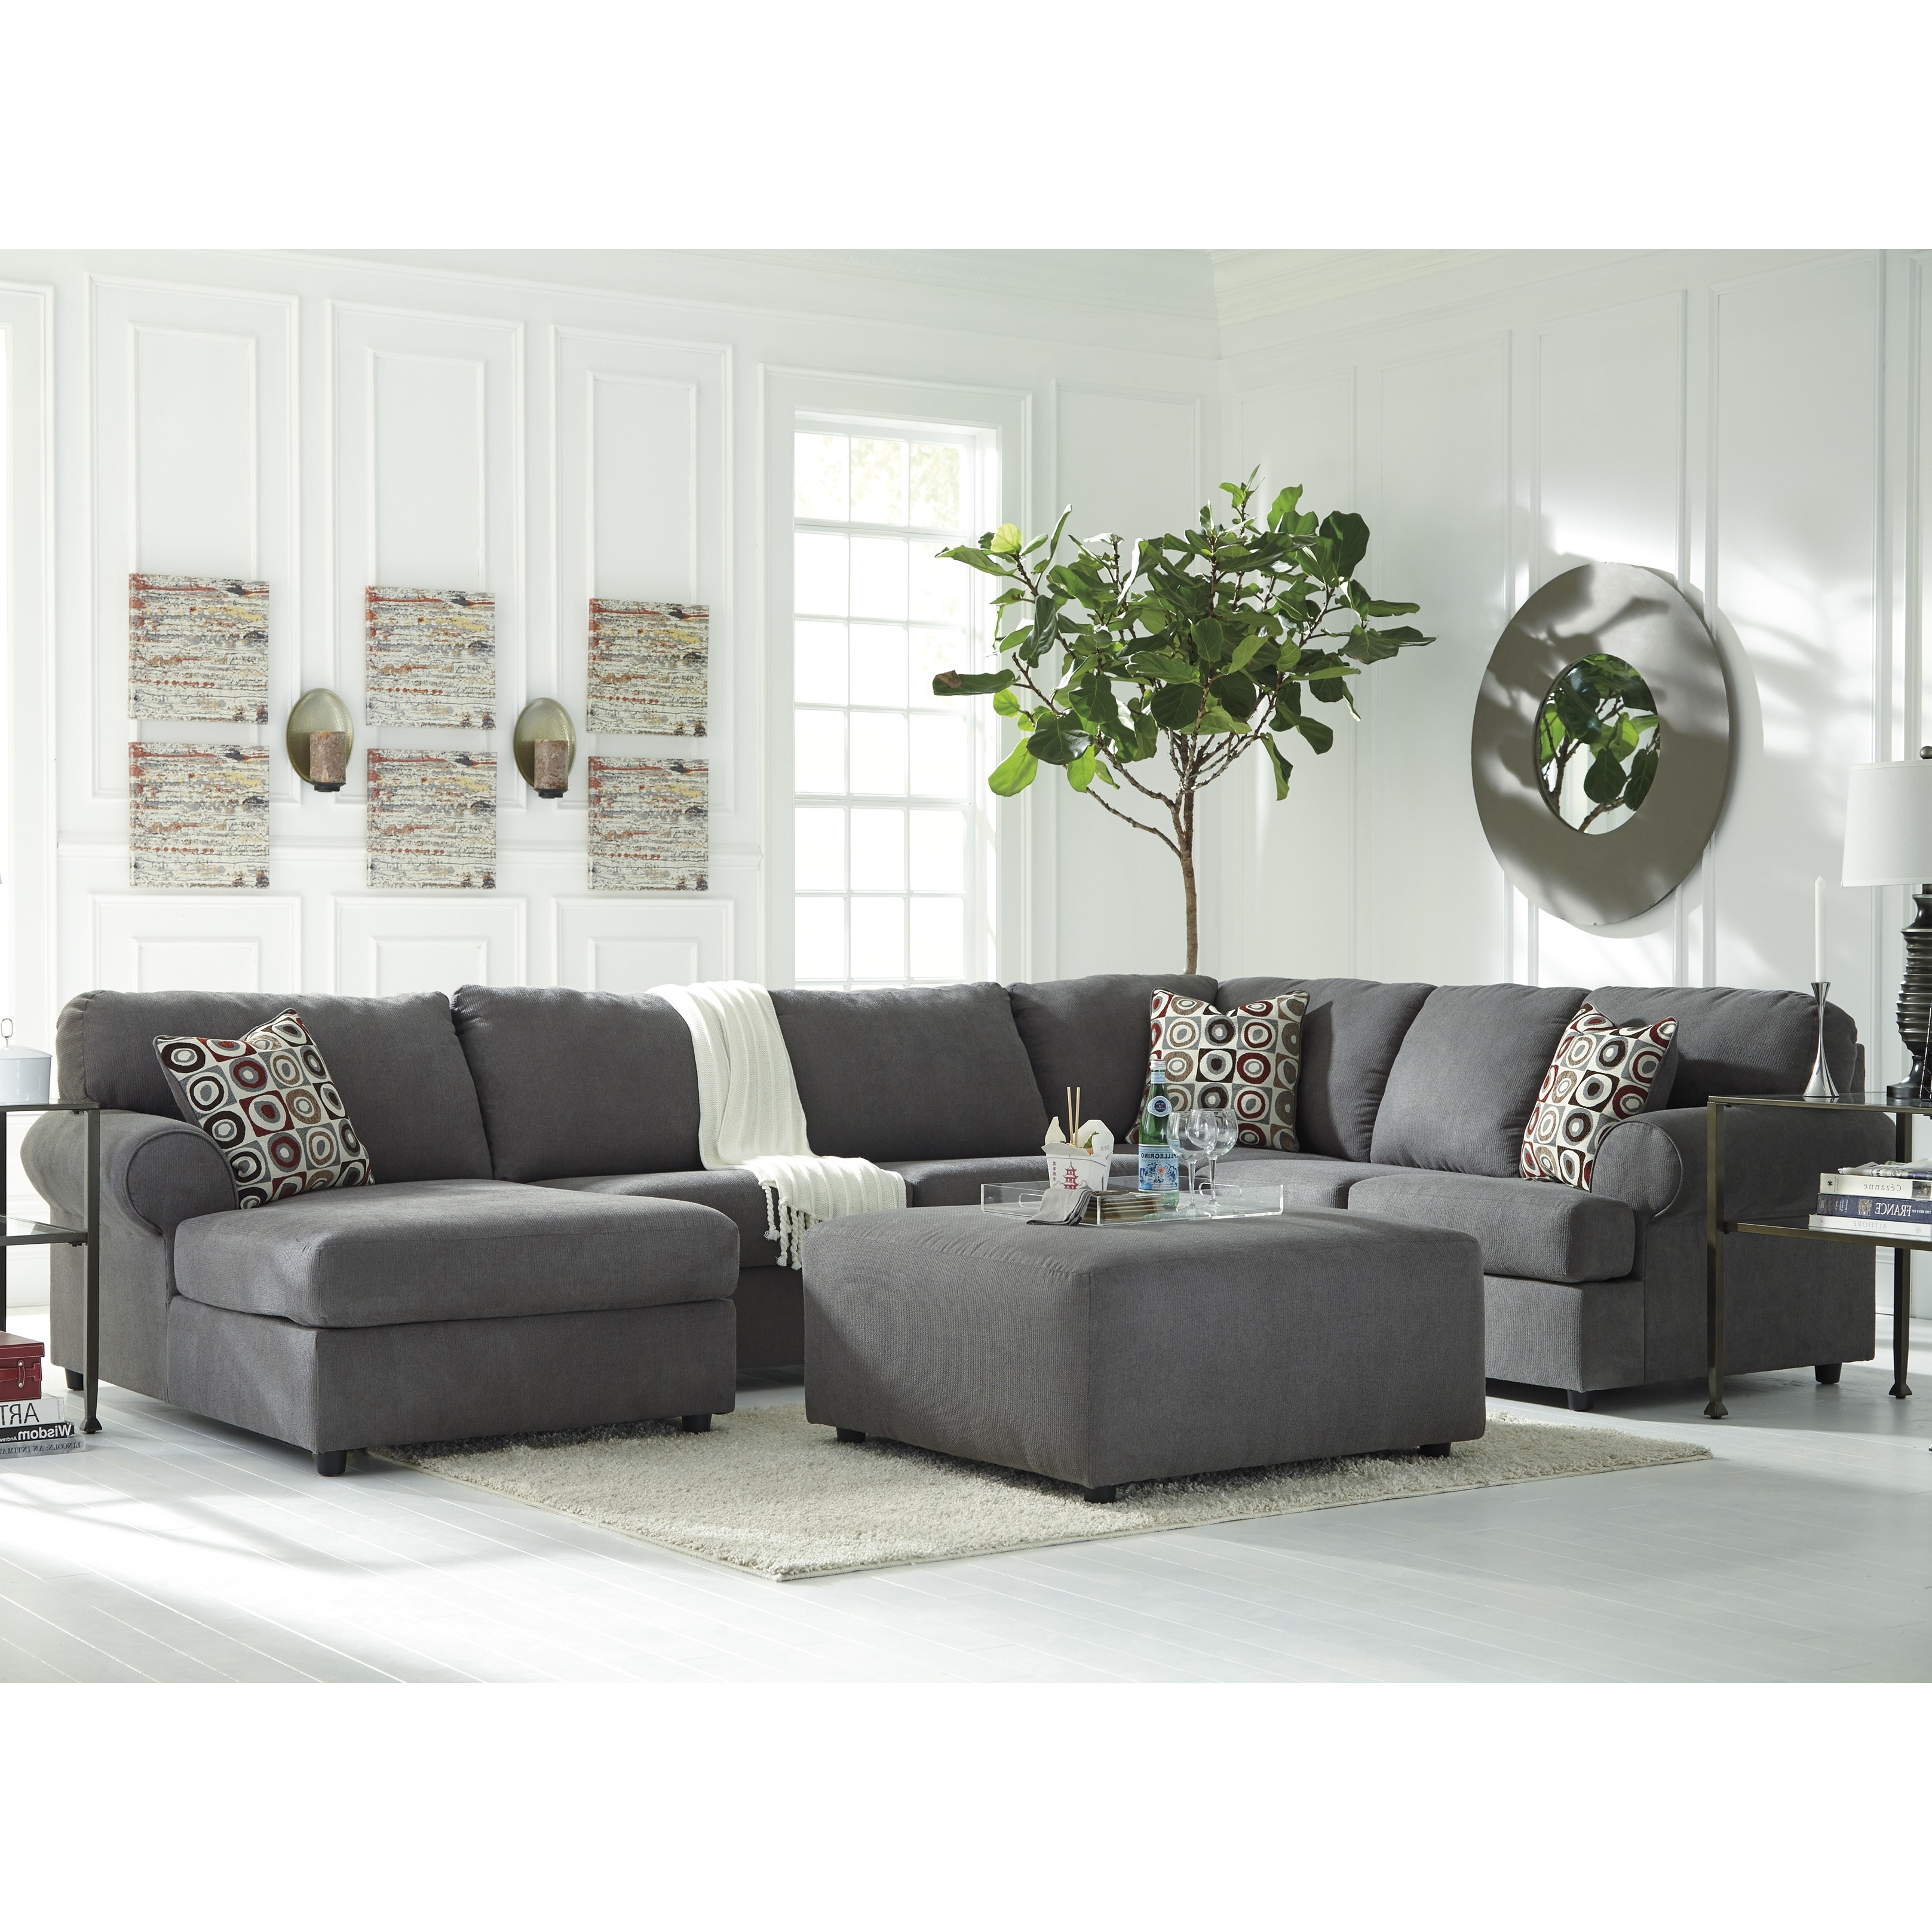 Well Known Ventura County Sectional Sofas In Sellersville Reversible Sectional (View 19 of 20)